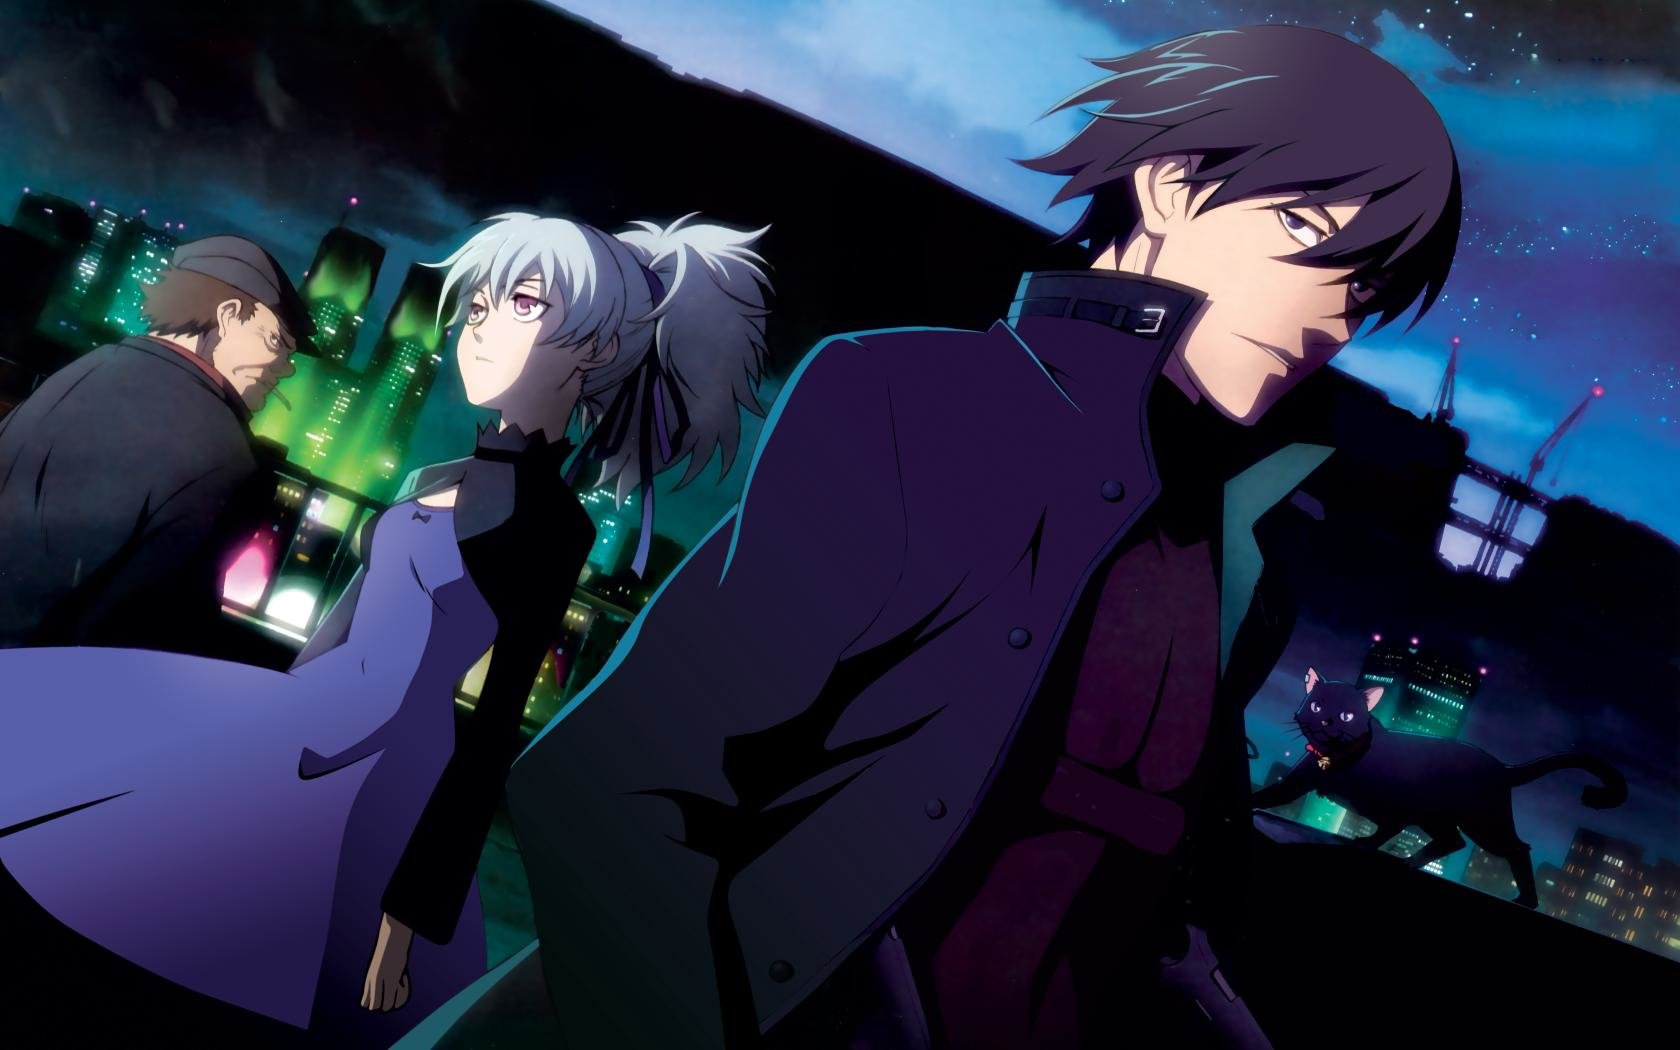 High resolution Darker Than Black hd 1680x1050 background ID:110166 for desktop